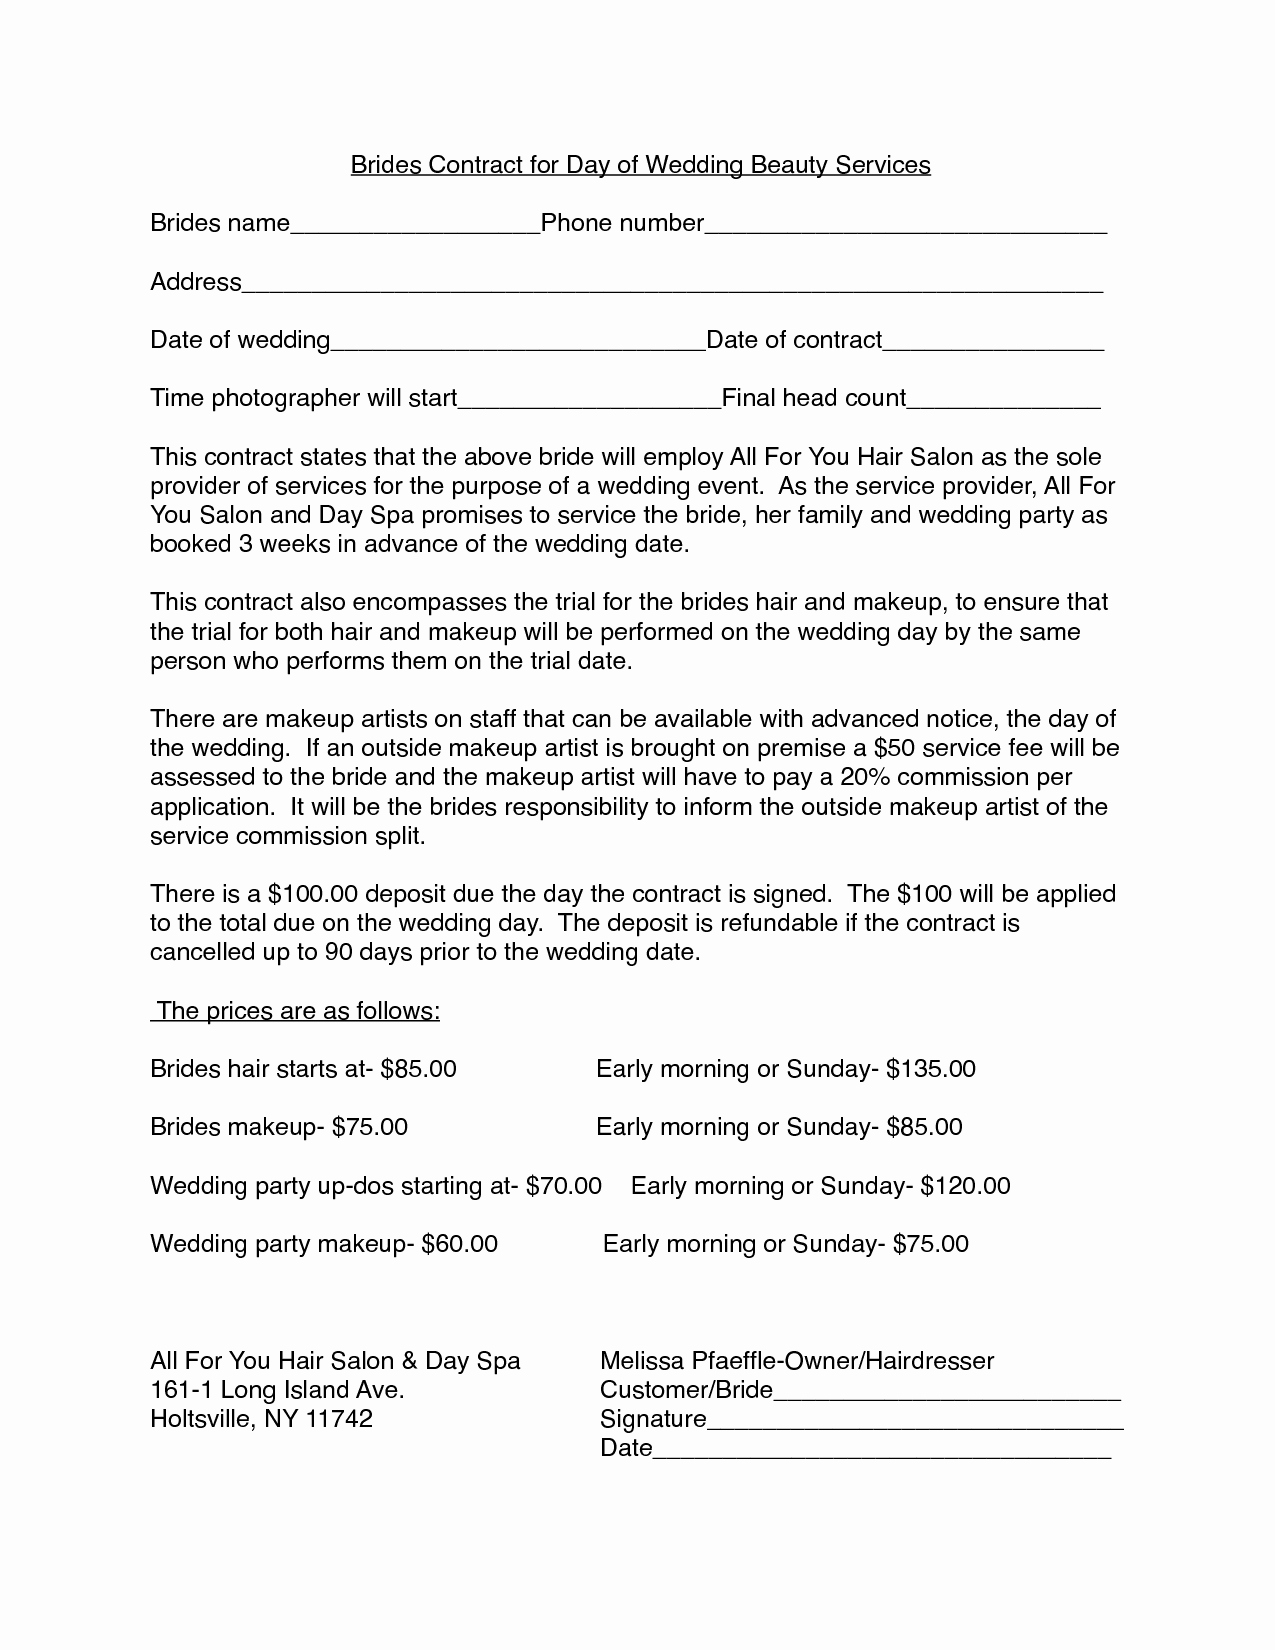 Hair Stylist Contract for Wedding Unique Hair Stylist Independent Contractor Agreement